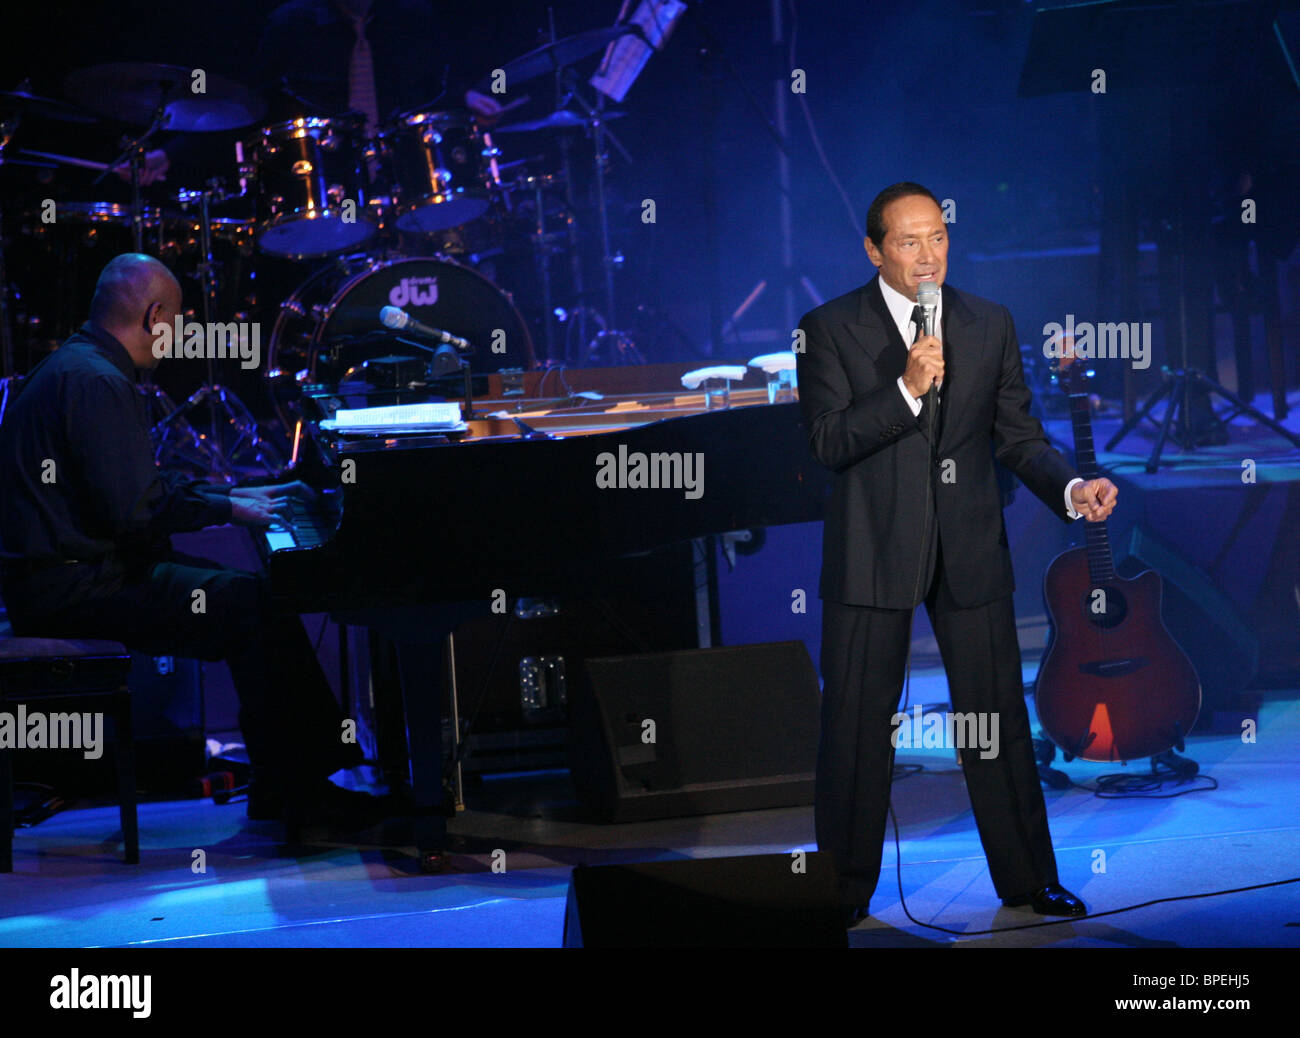 Ottawa-born singer Paul Anka performs in Moscow - Stock Image